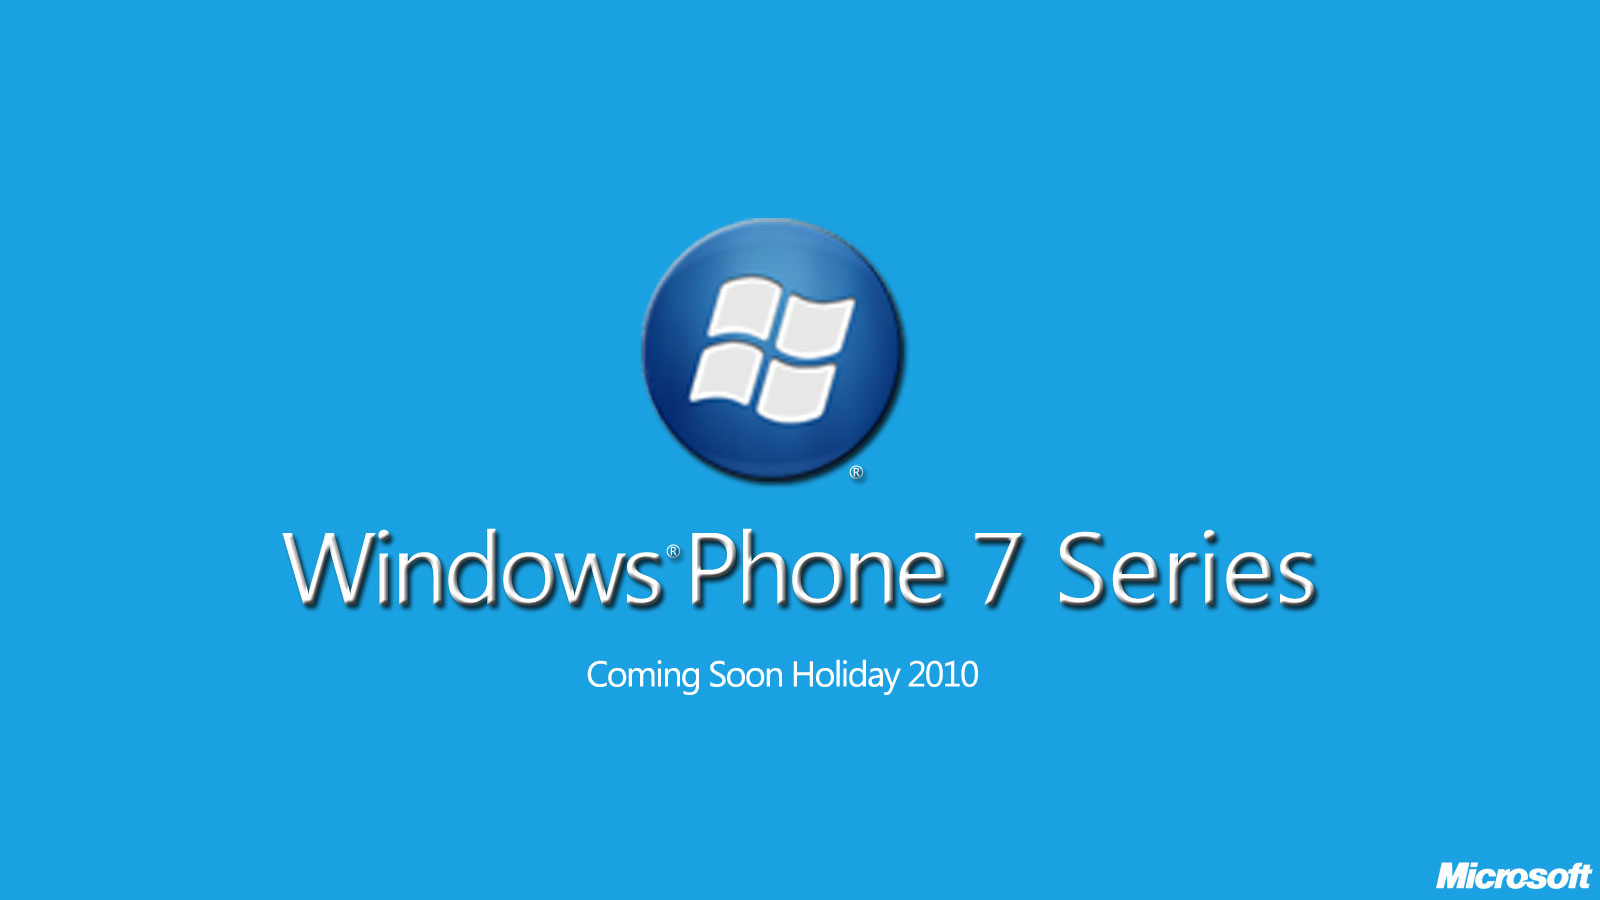 windows_phone_logo_wallpaper_database_widescreen_hd_wallpaper